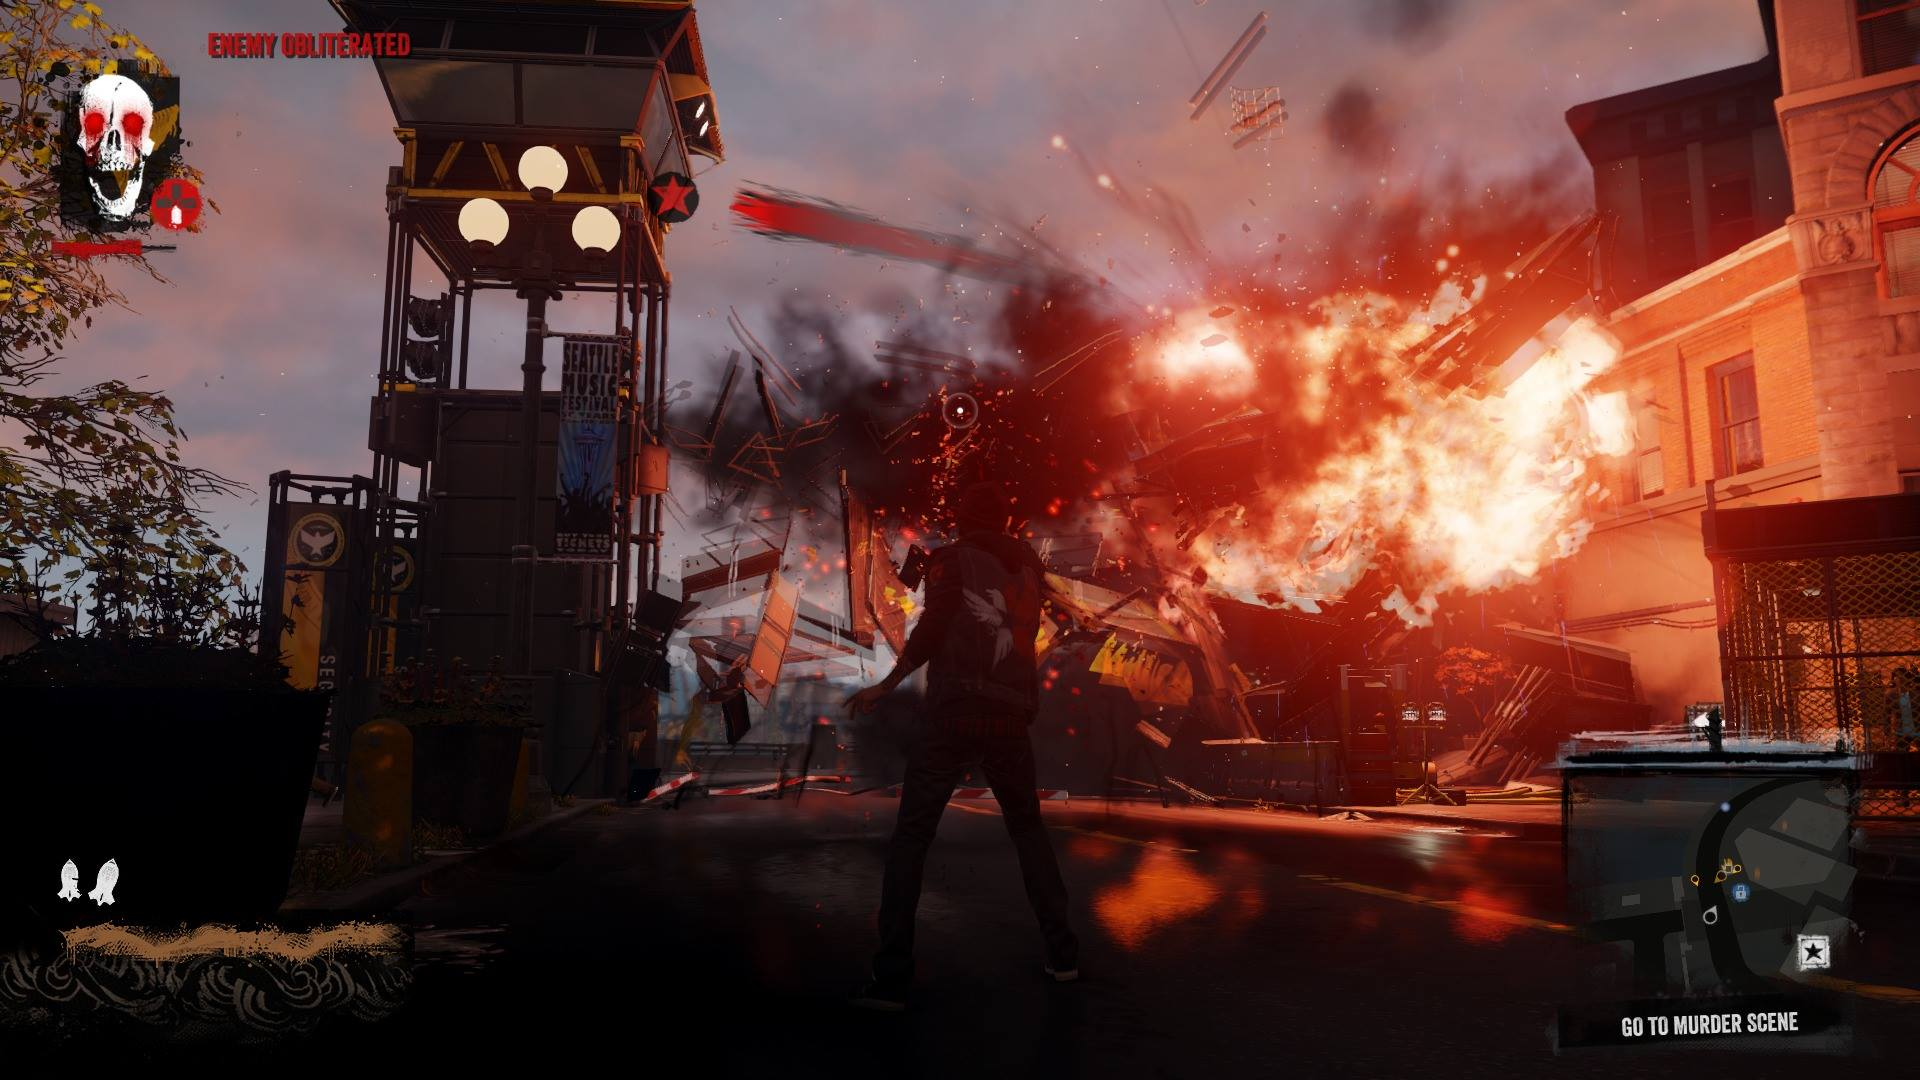 Watch Dogs Vs Infamous Second Son Screenshot Comparison